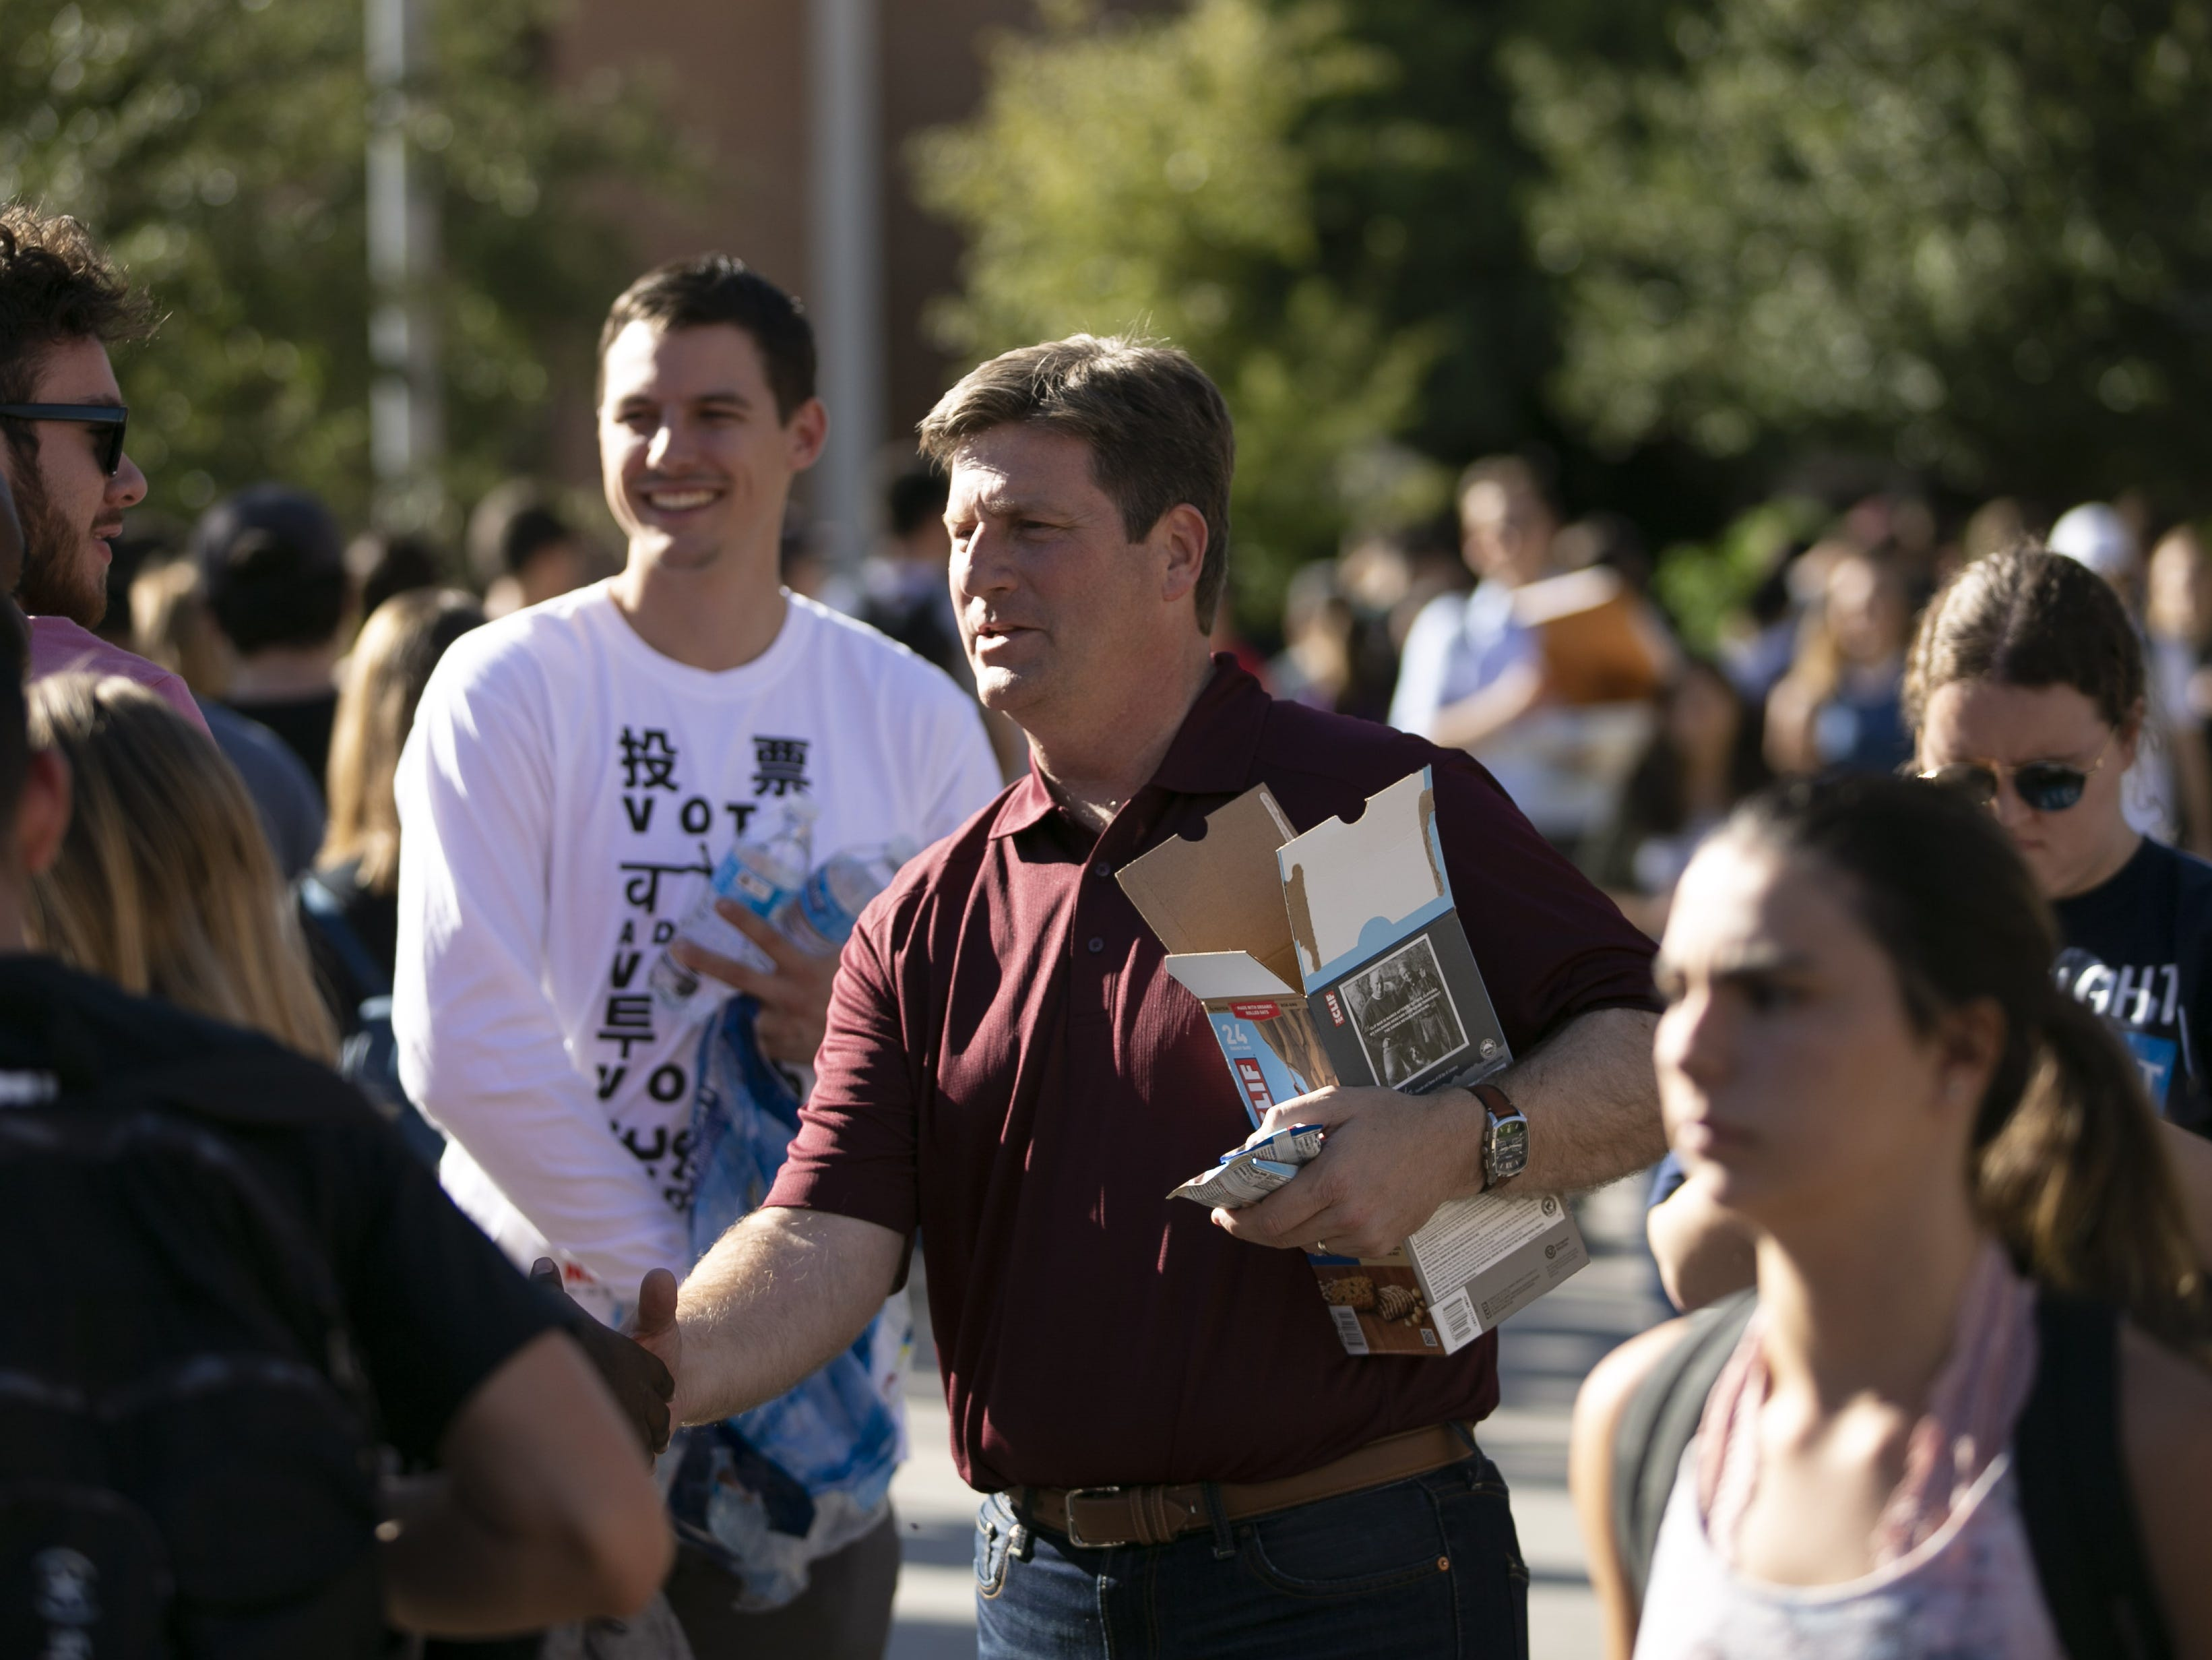 Greg Stanton, a Democrat running for U.S. Congress in Arizona's 9th Congressional District, shakes hands with Arizona State University students as they wait in line to vote at the polling place at ASU's Tempe campus on Nov. 6, 2018.